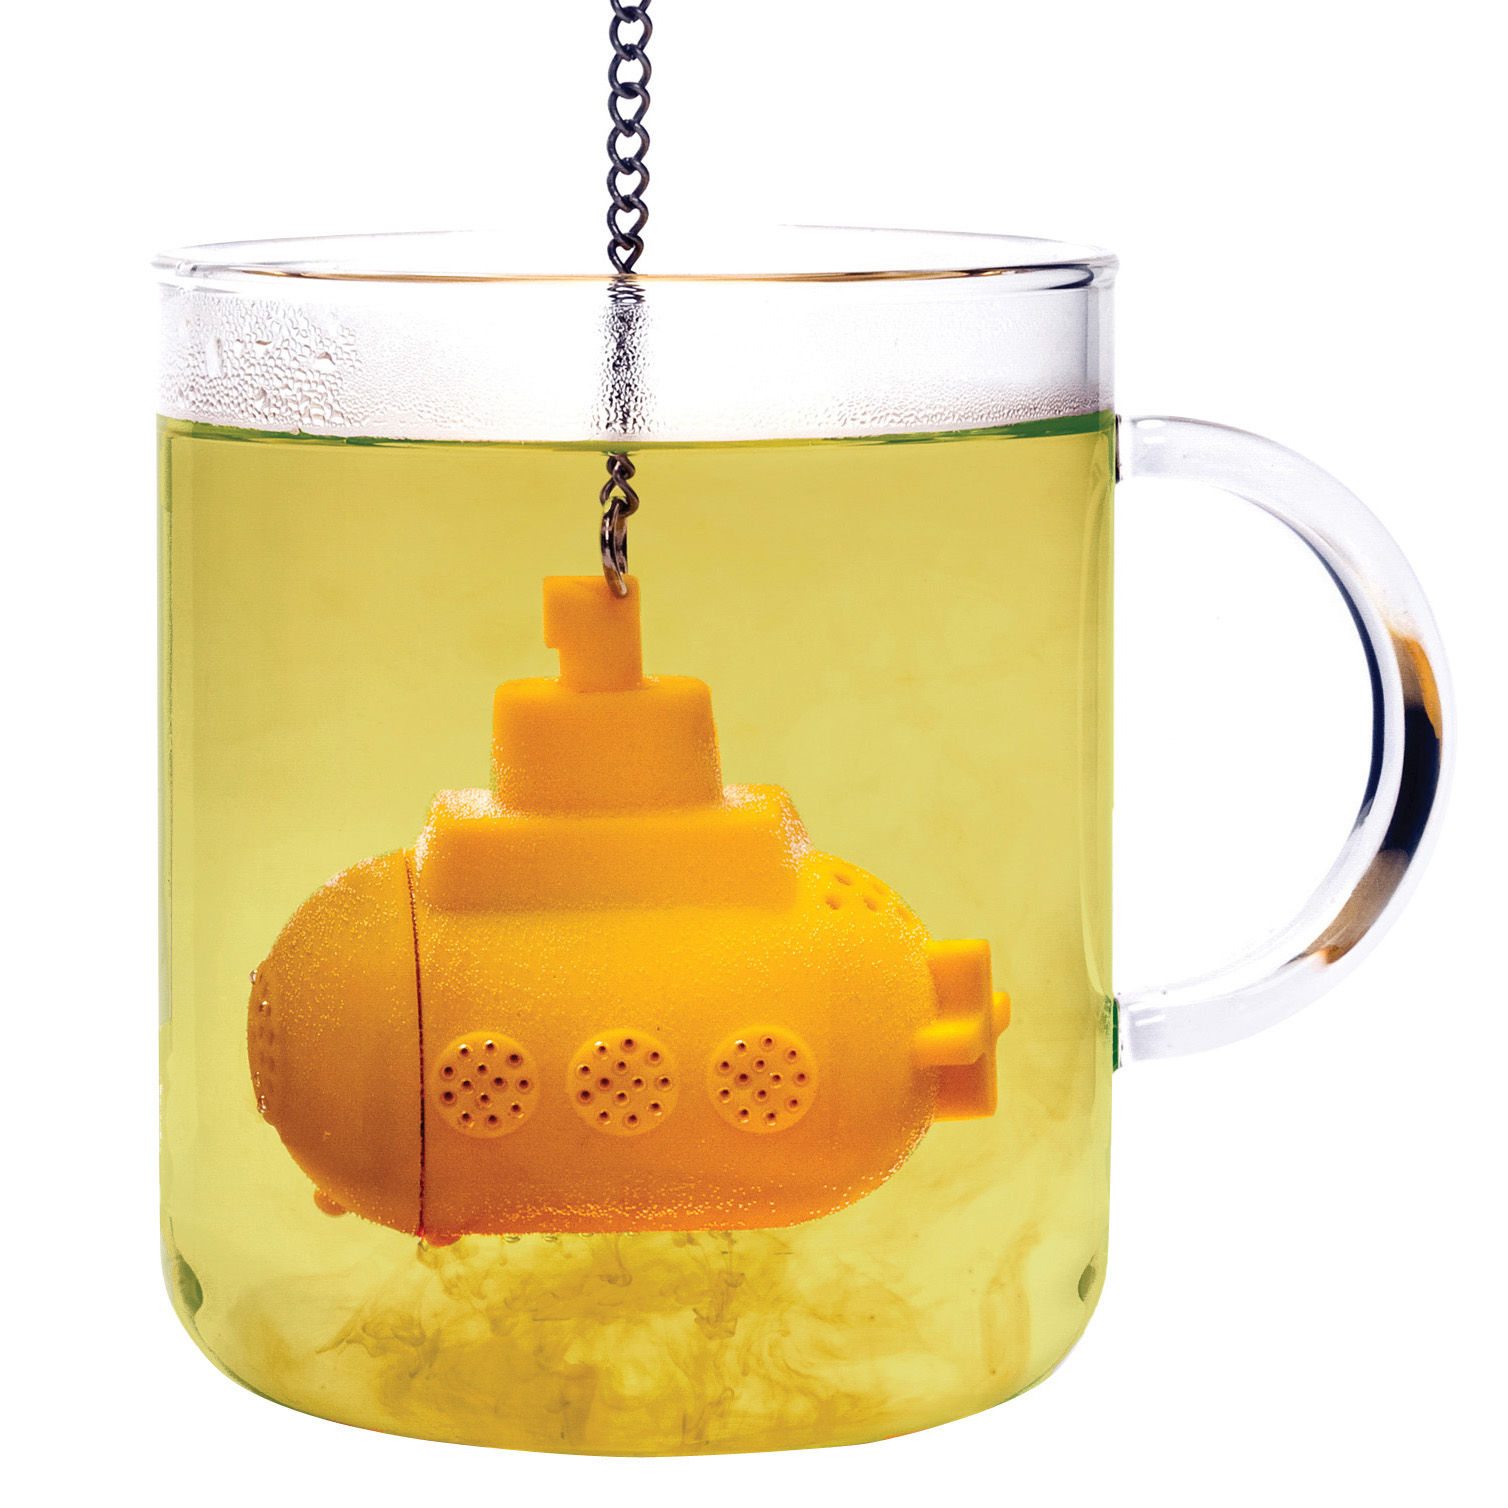 Tableware - Tea & Coffee Accessories - Tea sub Infuser by Pa Design - Yellow - Silicone